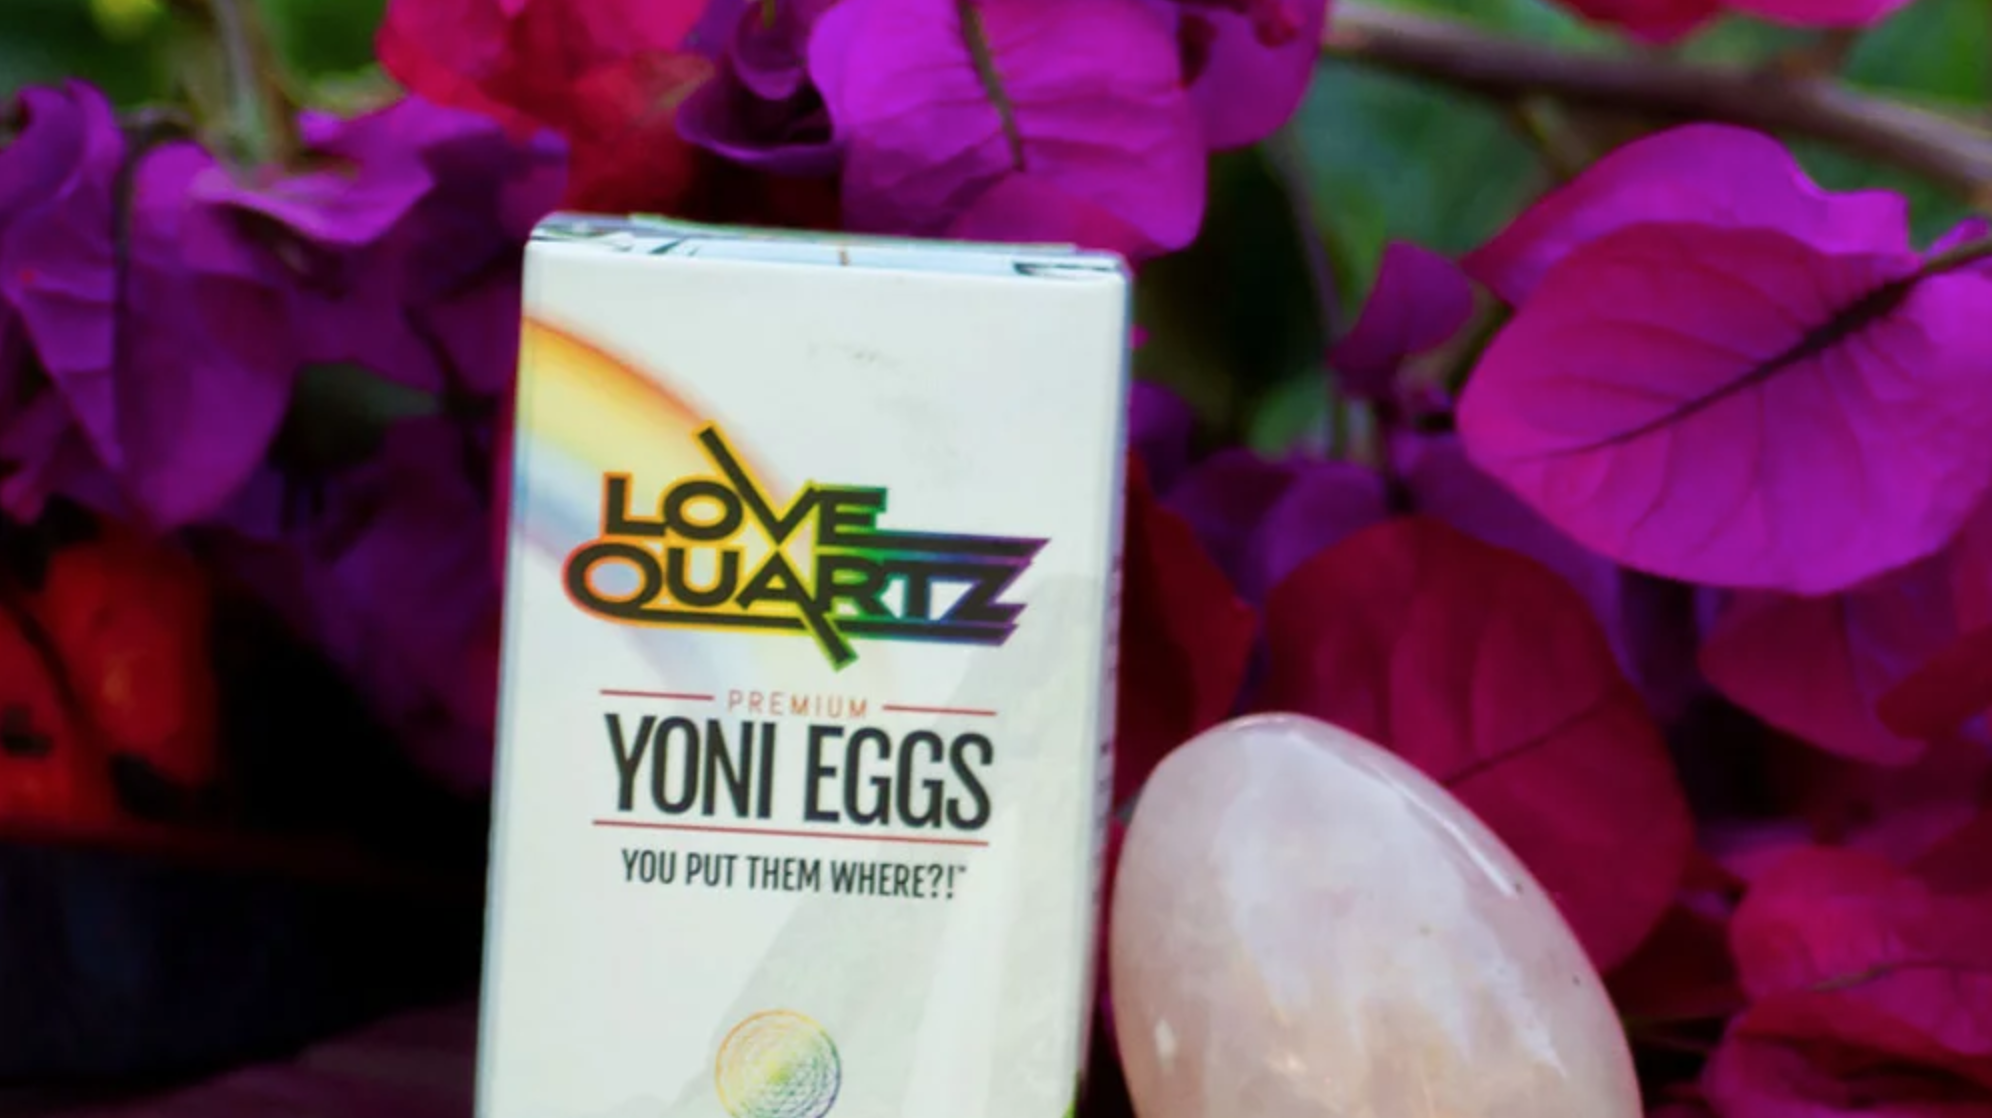 Love Quartz Rose Quartz Yoni Egg.jpg